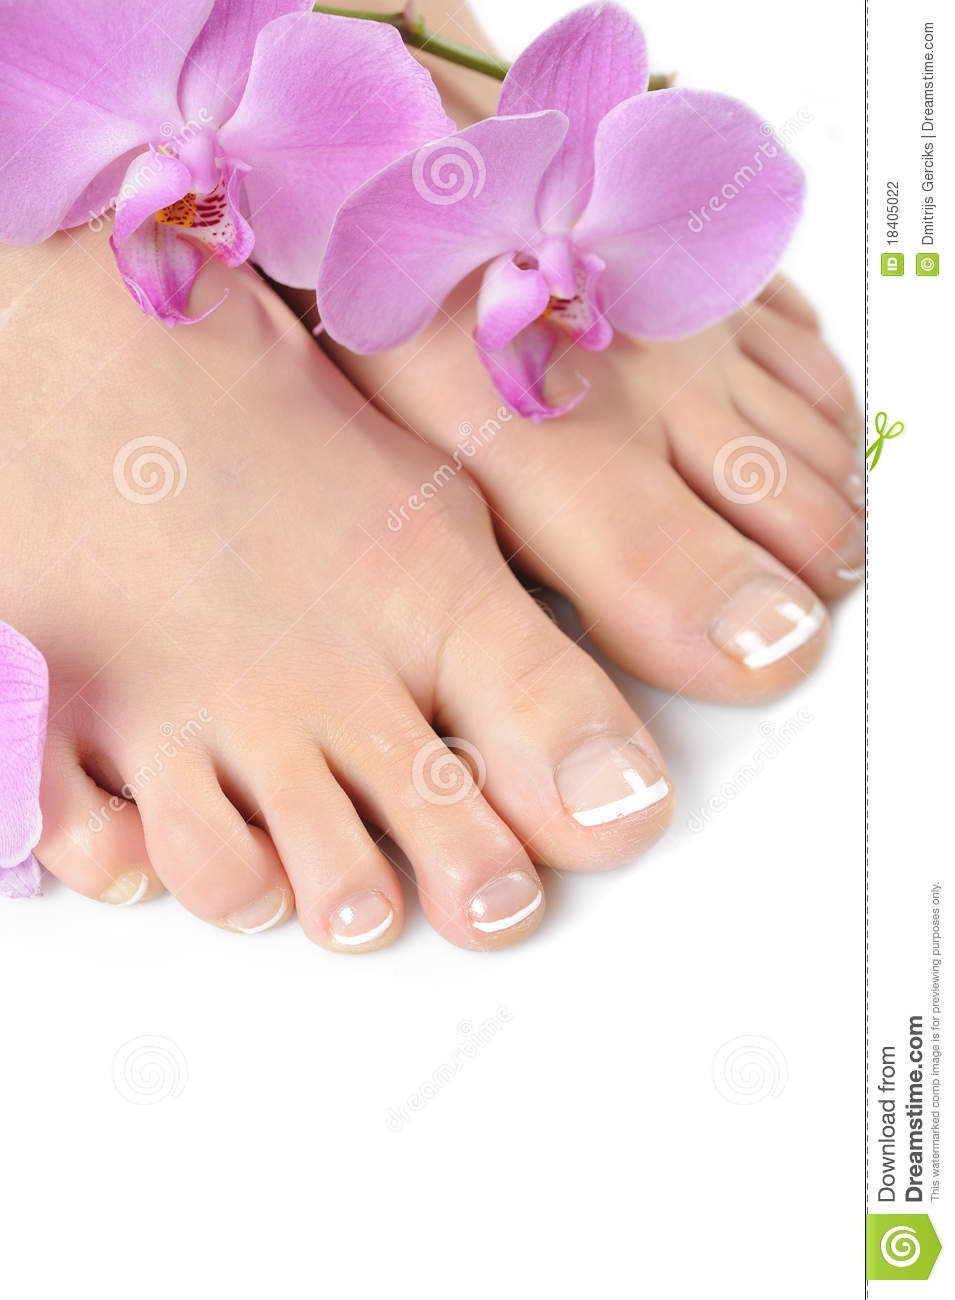 how to make feet nails beautiful